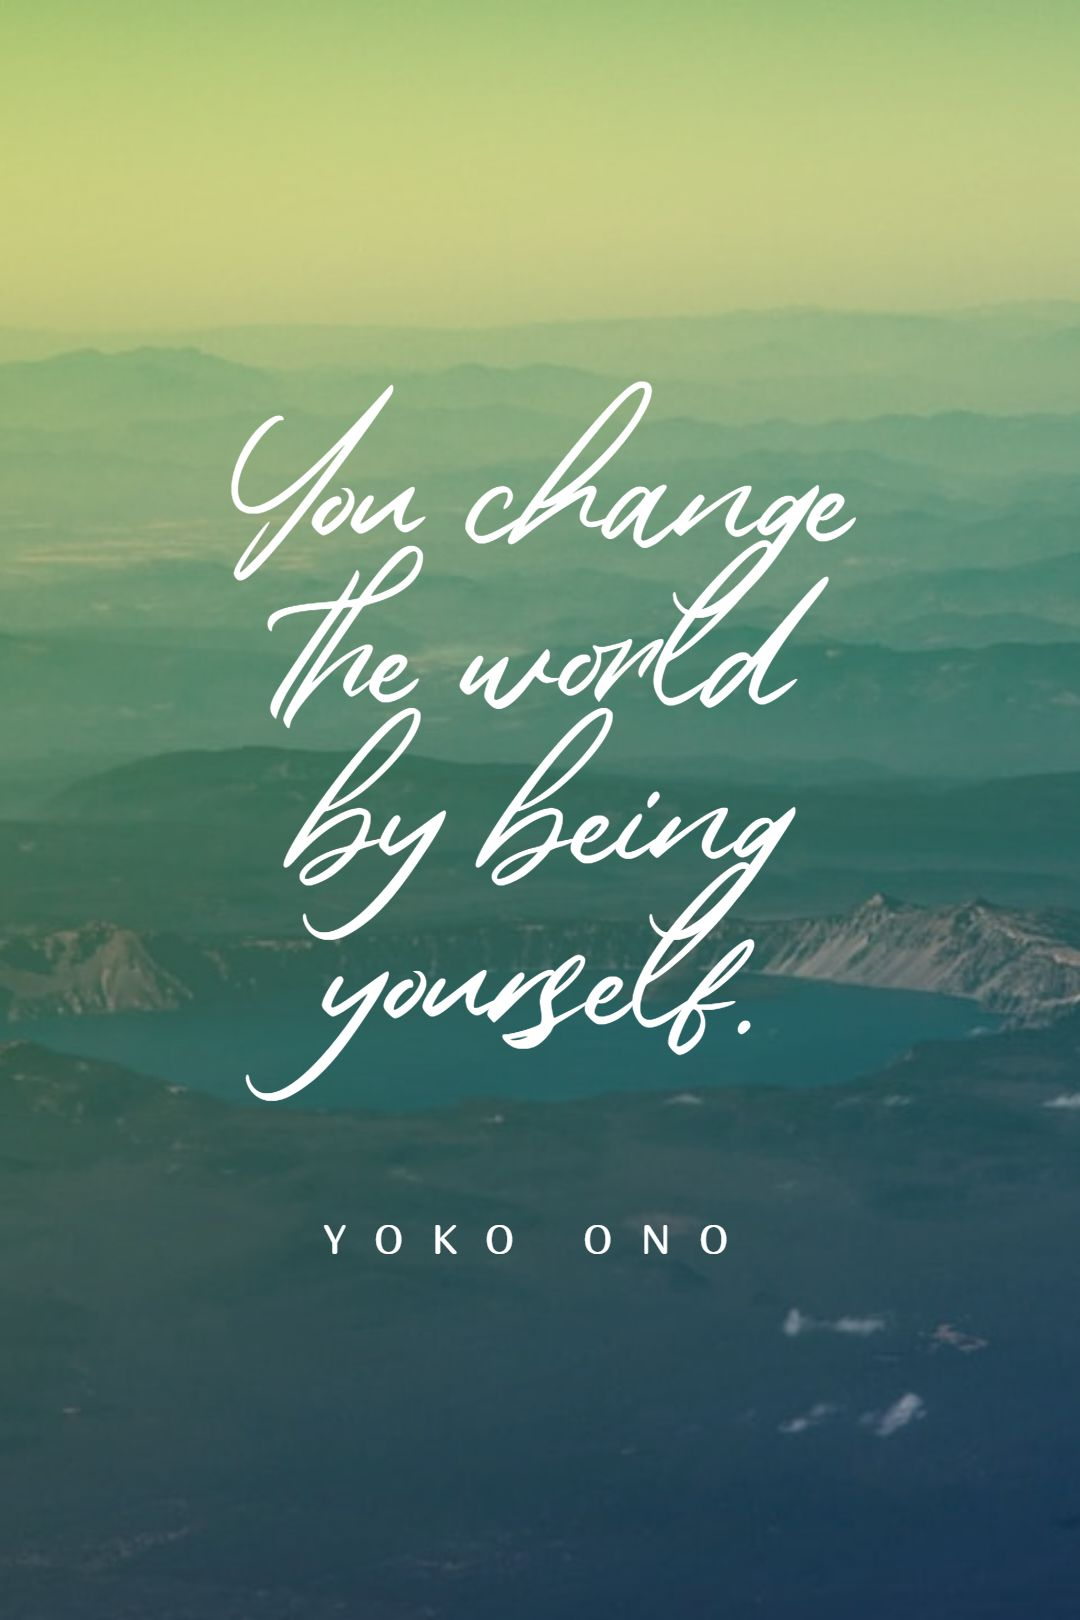 Quotes image of You change the world by being yourself.